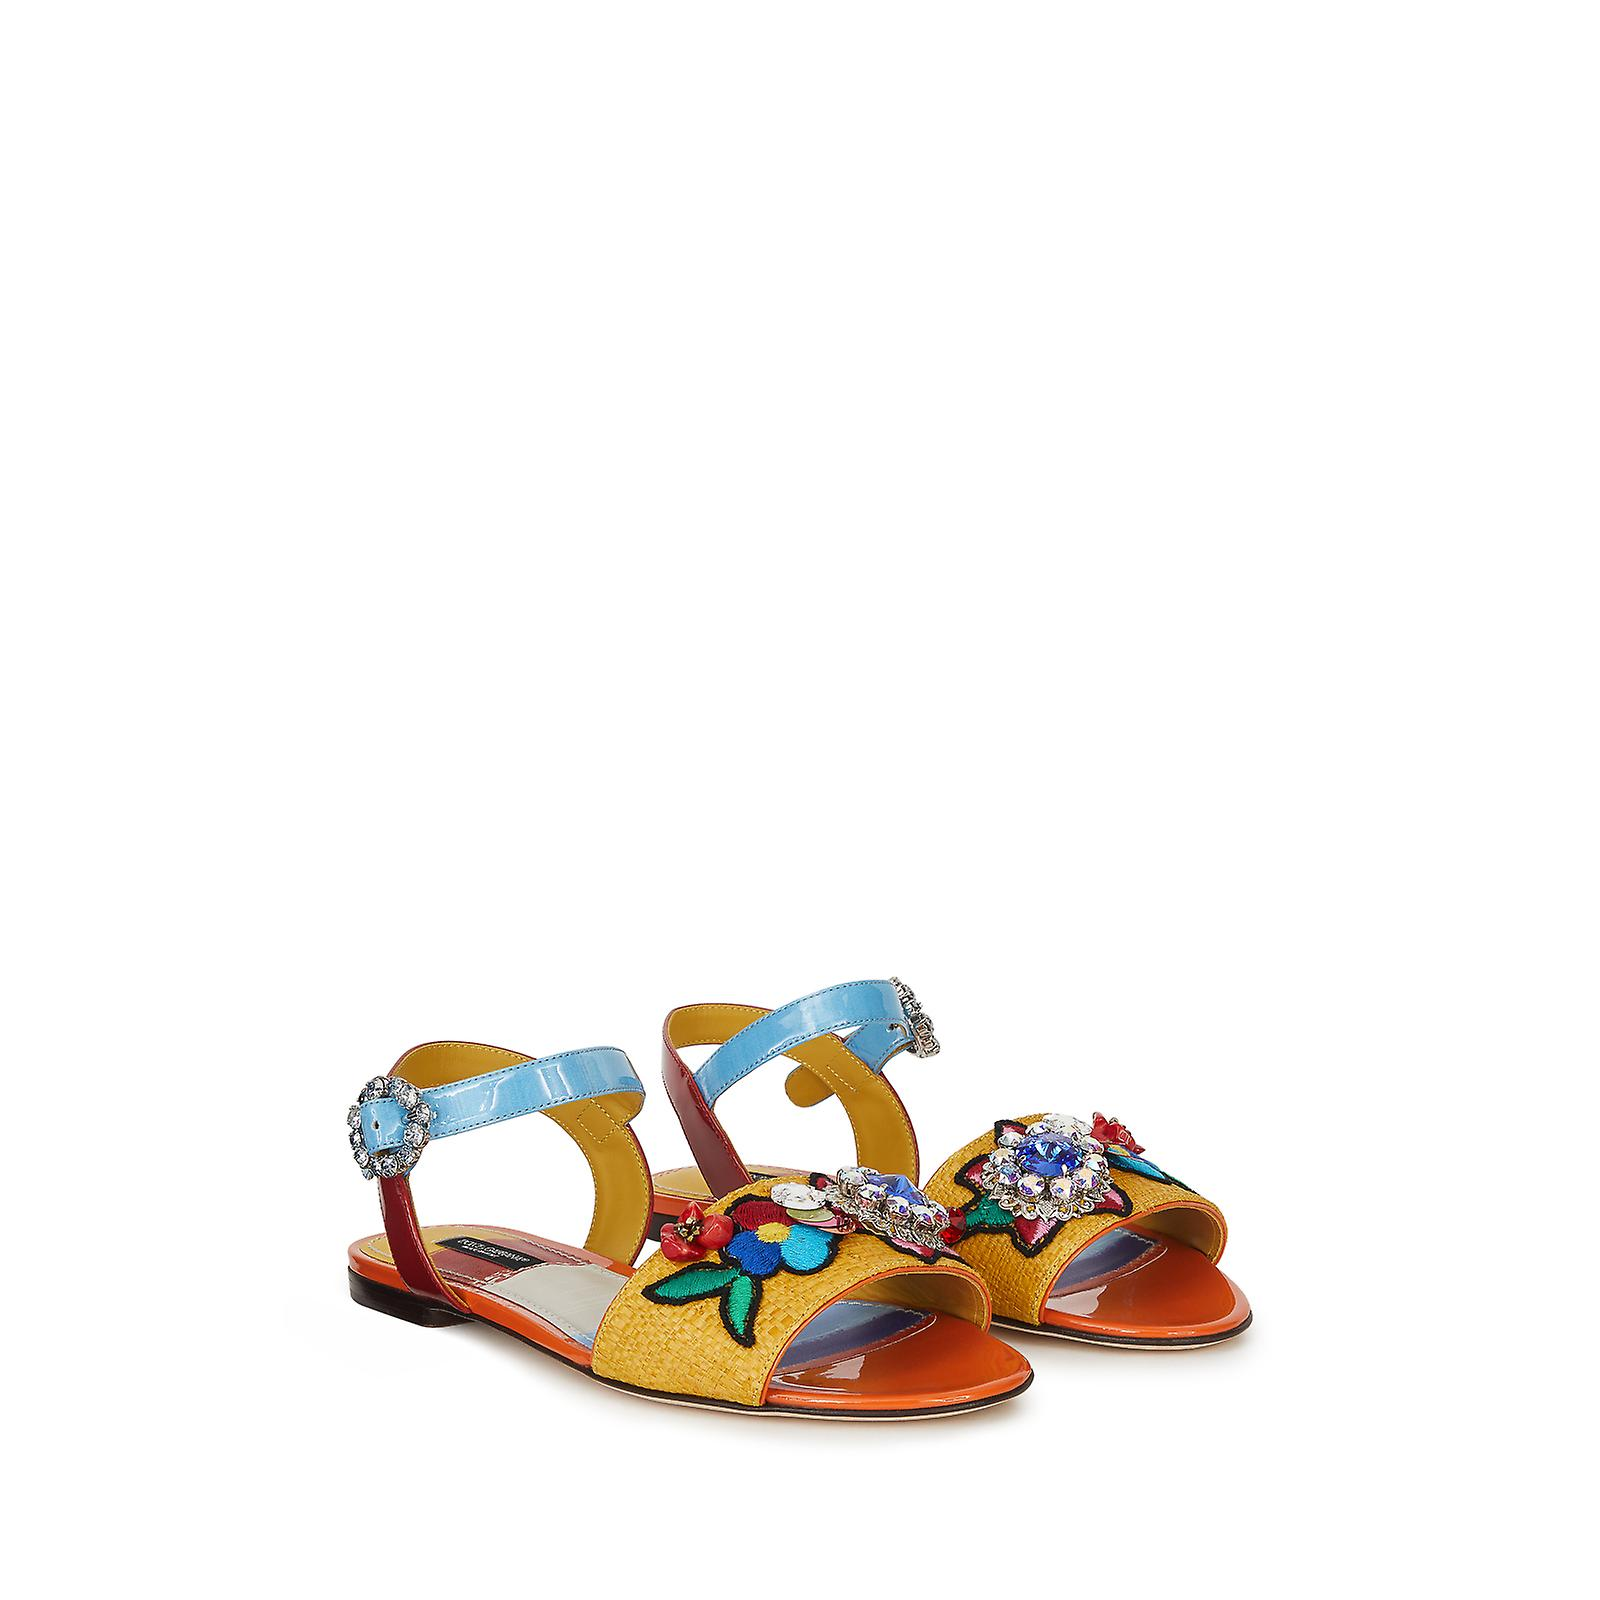 Dolce & Gabbana Sandals In Patent Leather With Floral Print Fs11h